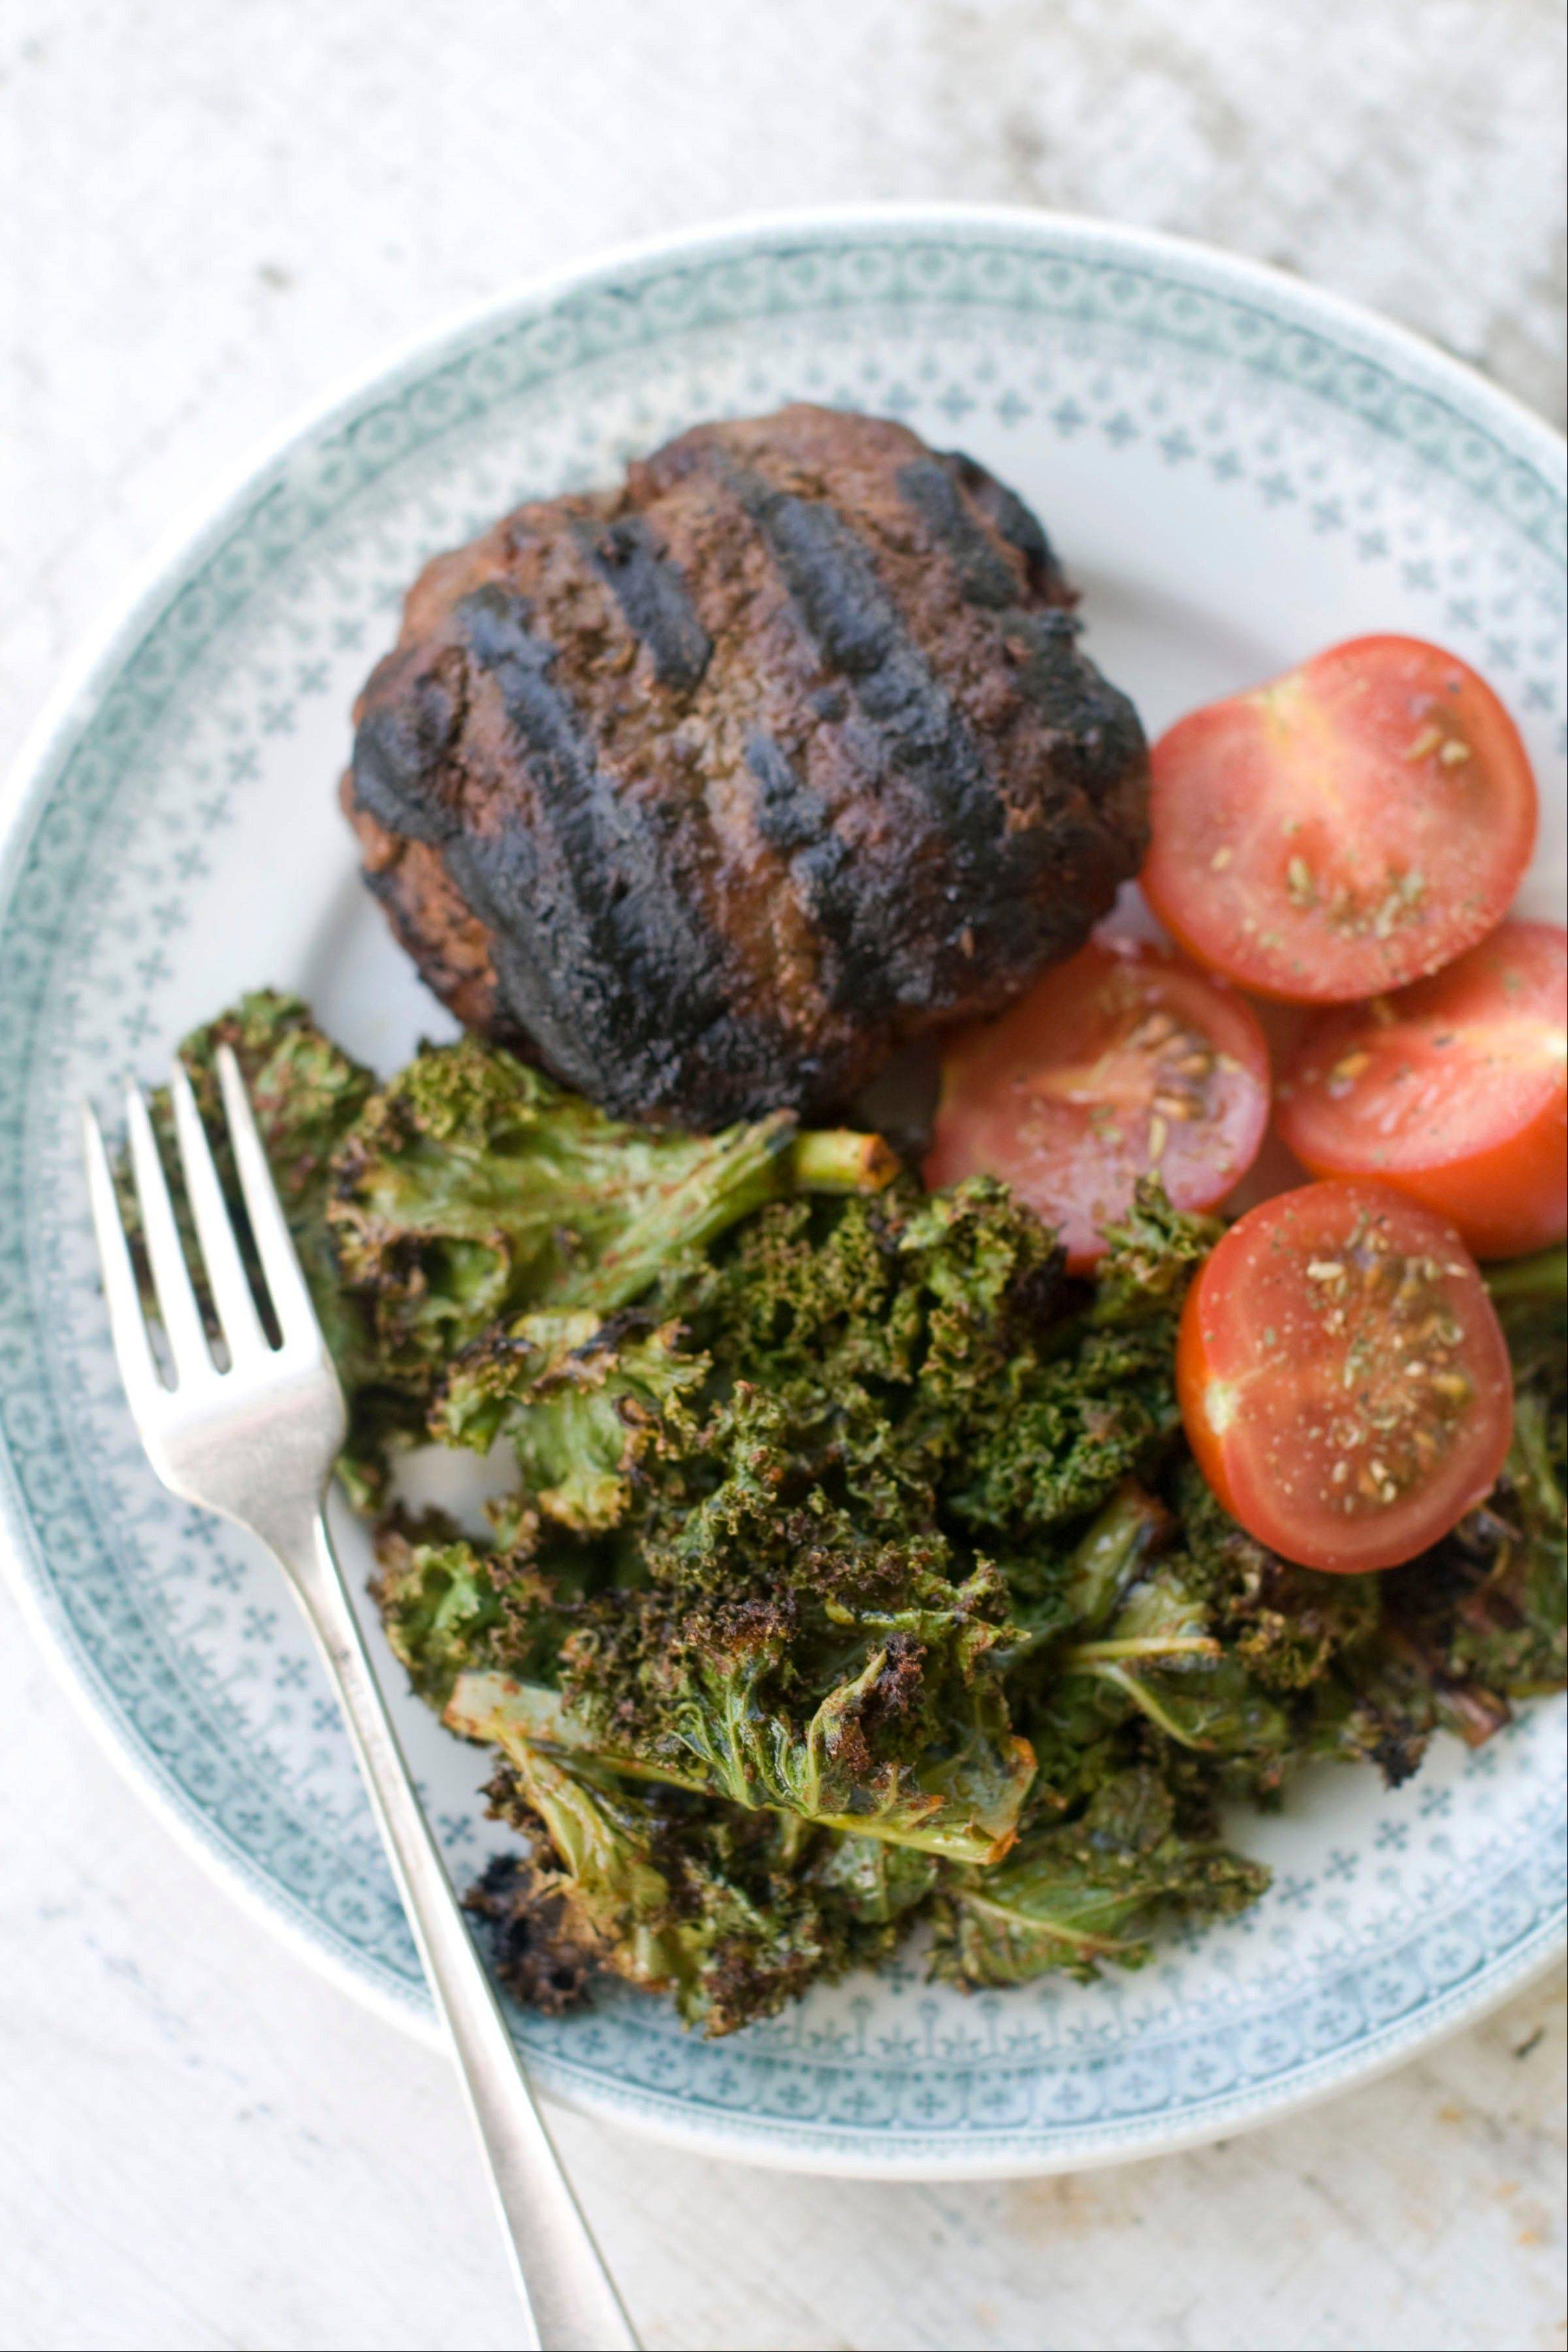 Garlicky grilled kale served with a burger and fresh tomatoes makes a perfect summer meal.